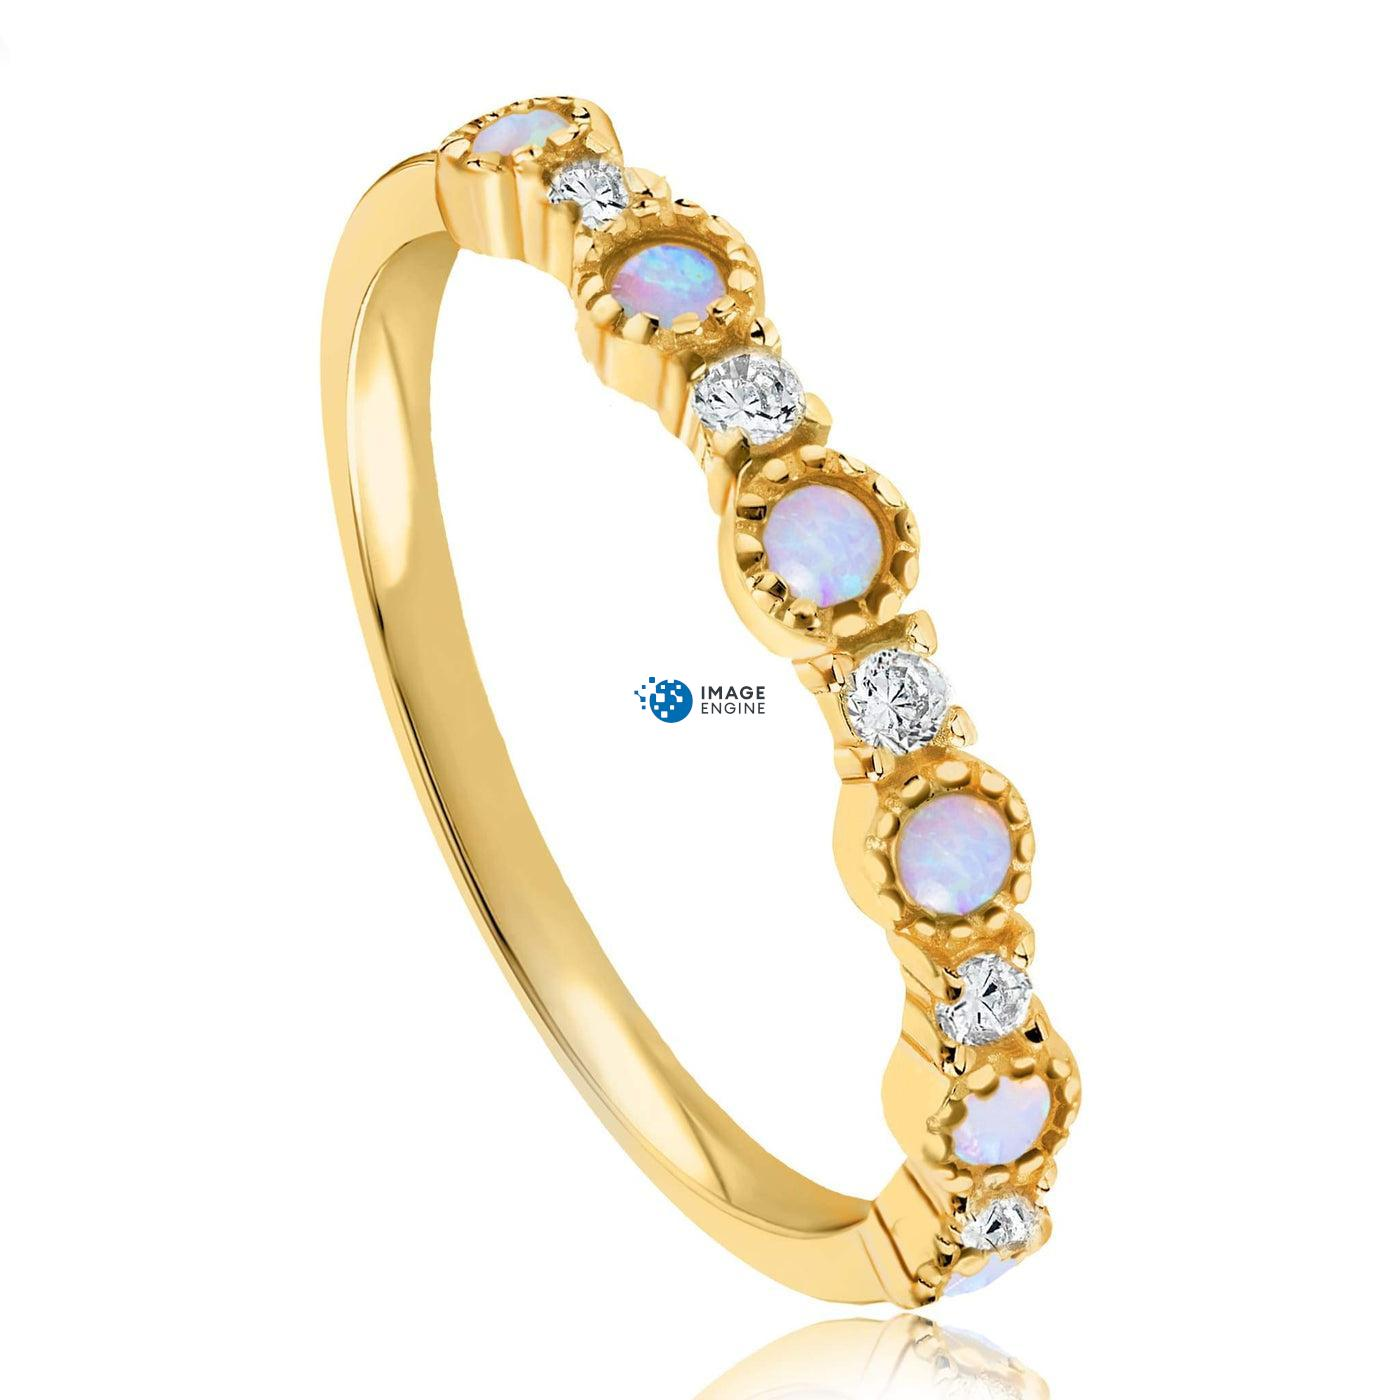 Debra Dots Opal Ring - Three Quarter View - 18K Yellow Gold Vermeil